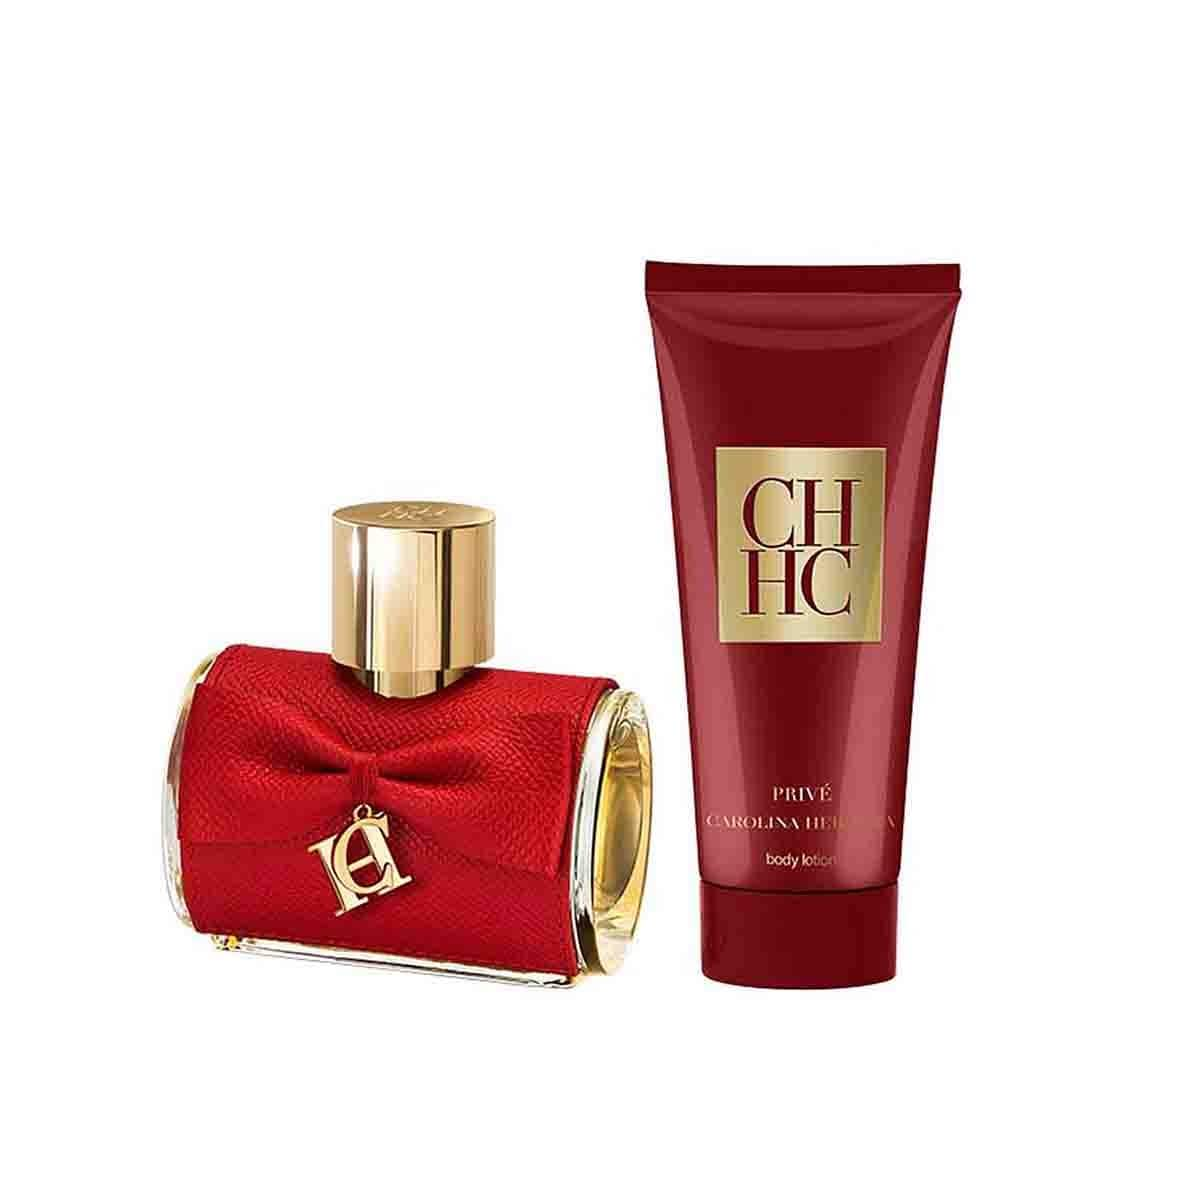 Estuche para Dama Carolina Herrera Ch Privée Edp 80 Ml + Body Lotion 100 Ml